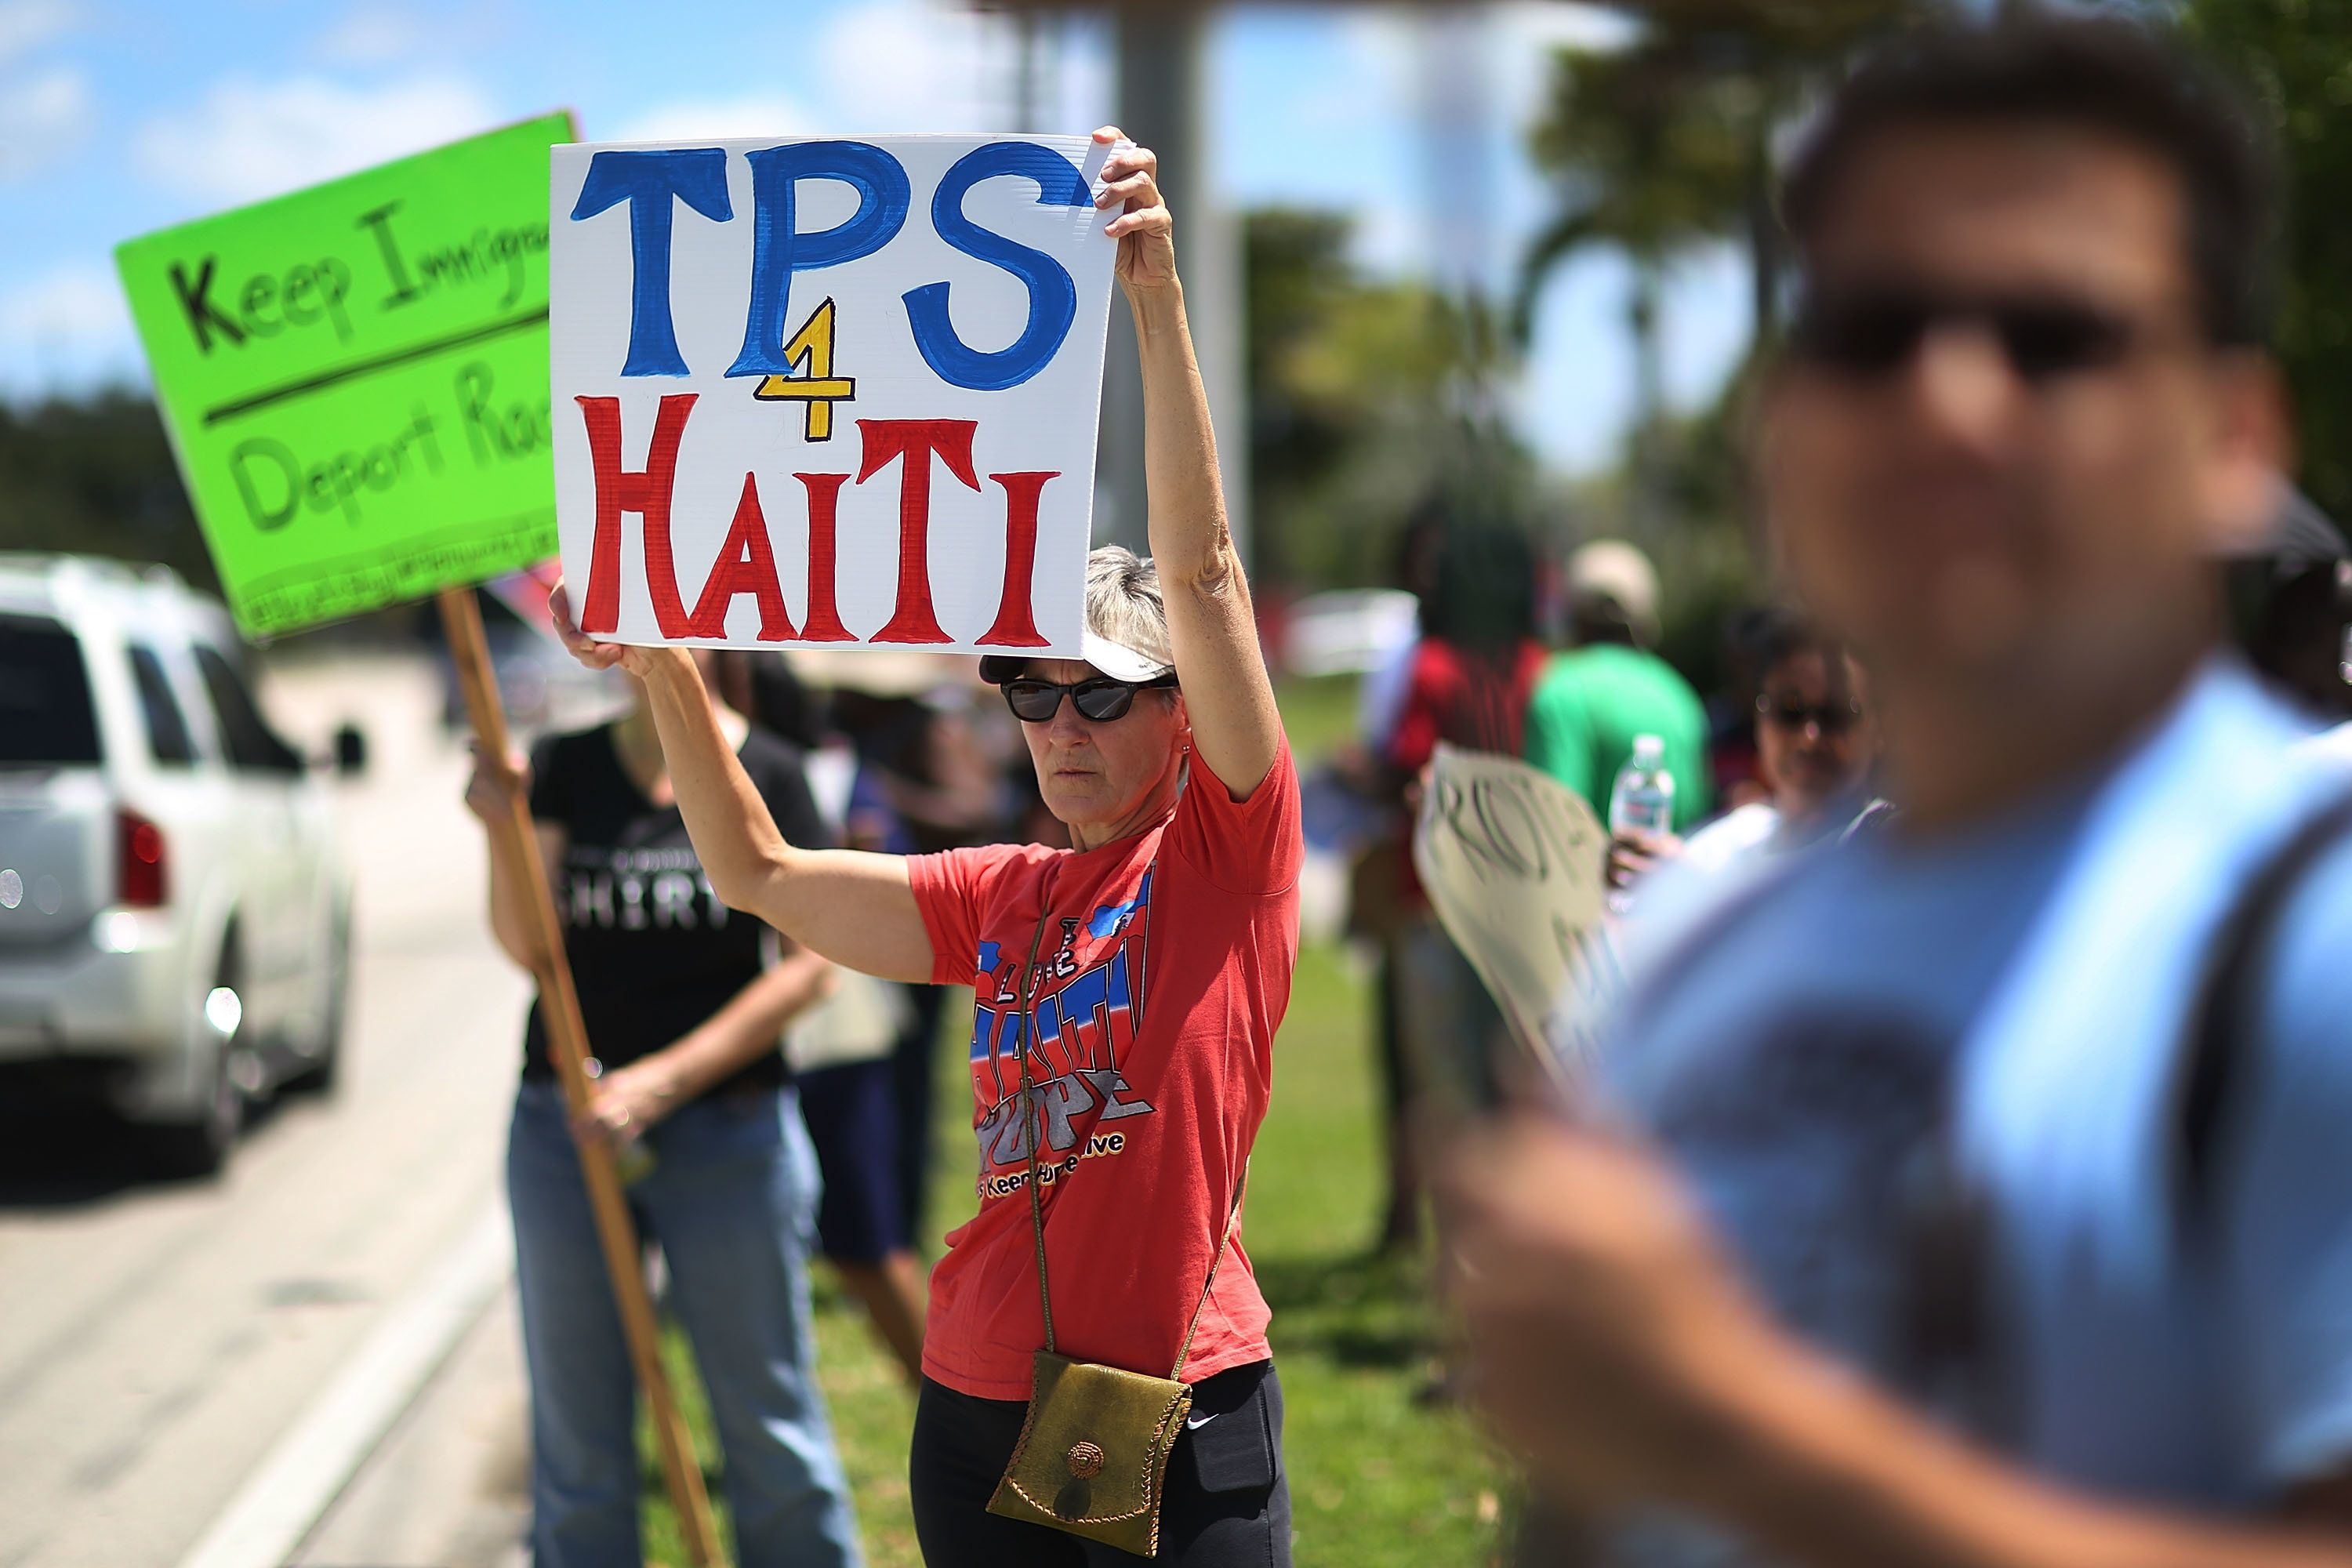 Protesters gather in front of the U.S. Citizenship and Immigration Services office in Broward County, Florida, on May 21 to u